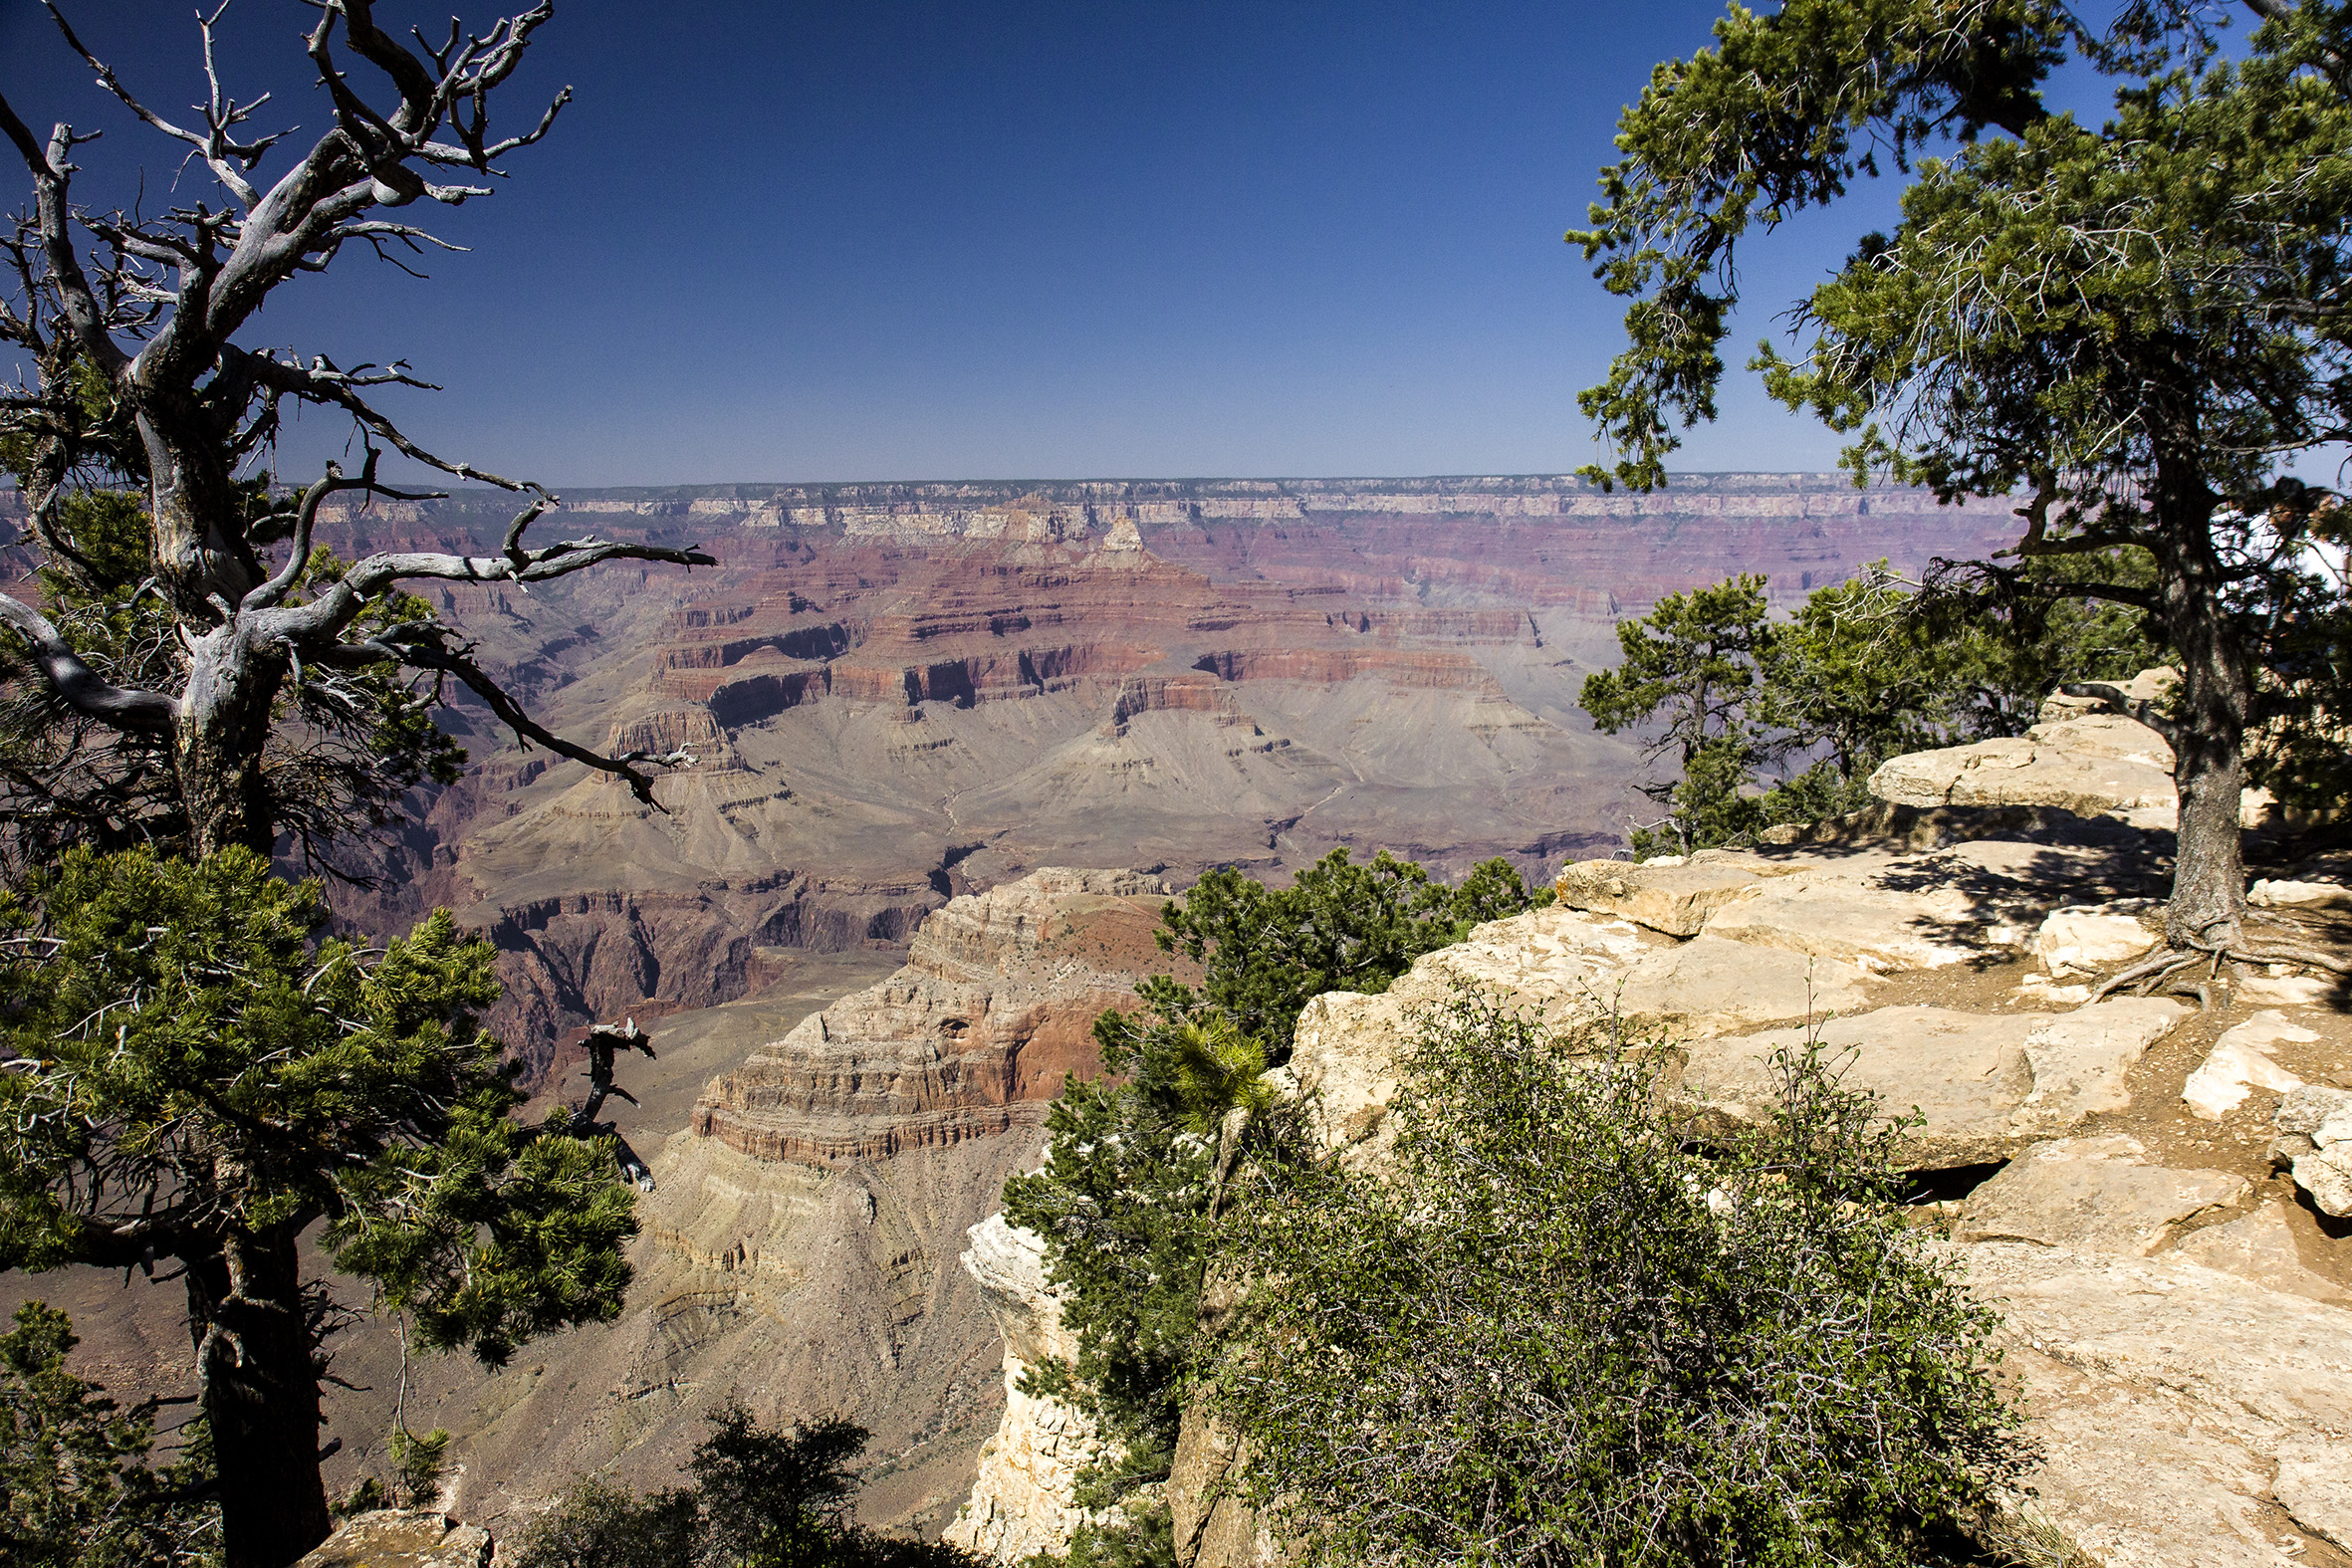 voyages-grand-canyon-usa-ouest-2012-marie-colette-becker-08